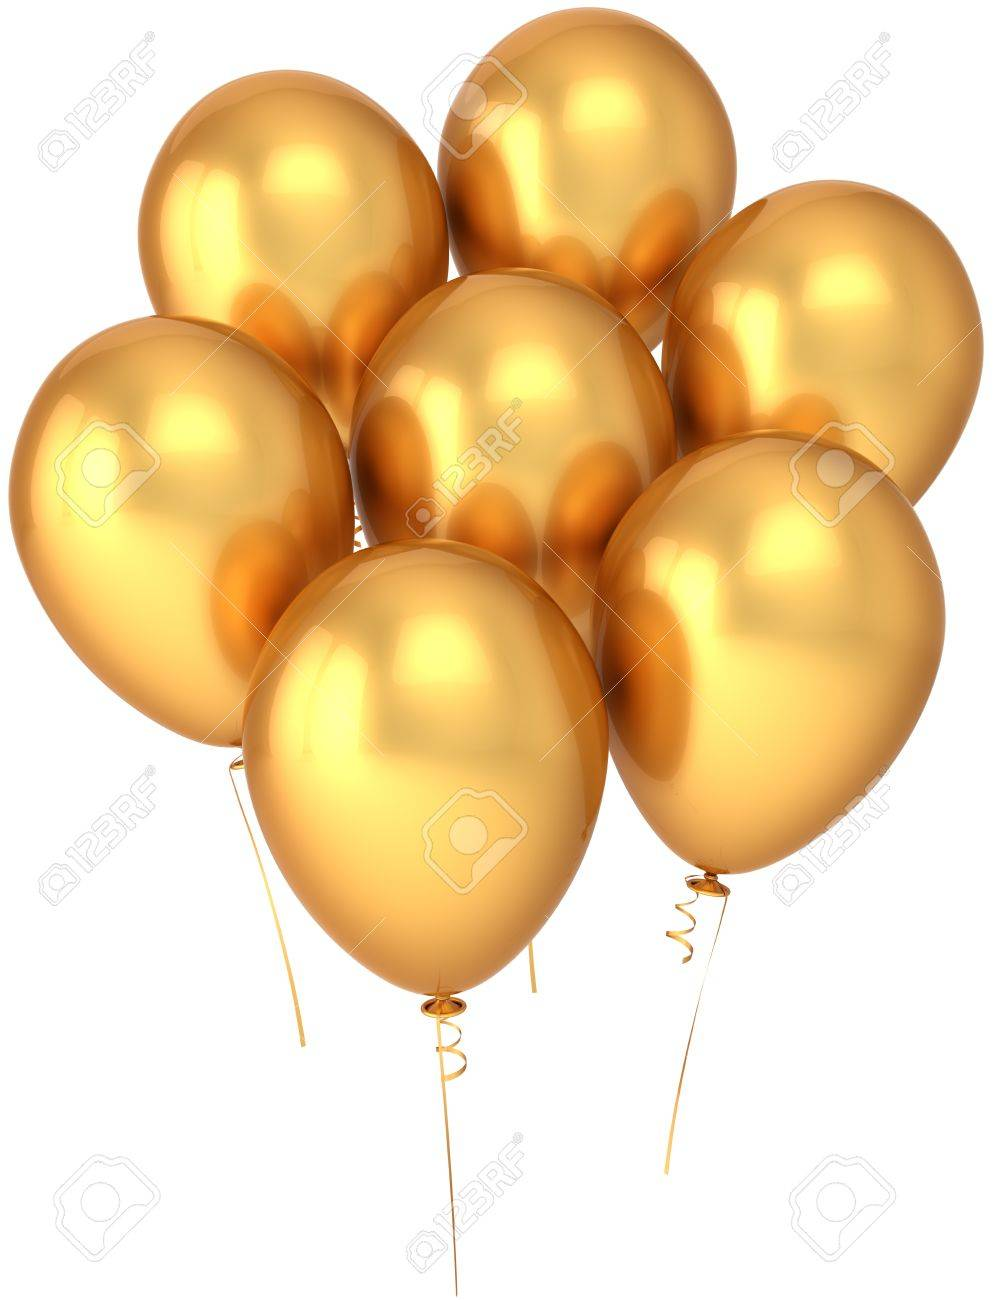 Party balloons seven colored golden. Shiny birthday celebration decoration.  Joyful happiness abstract. This